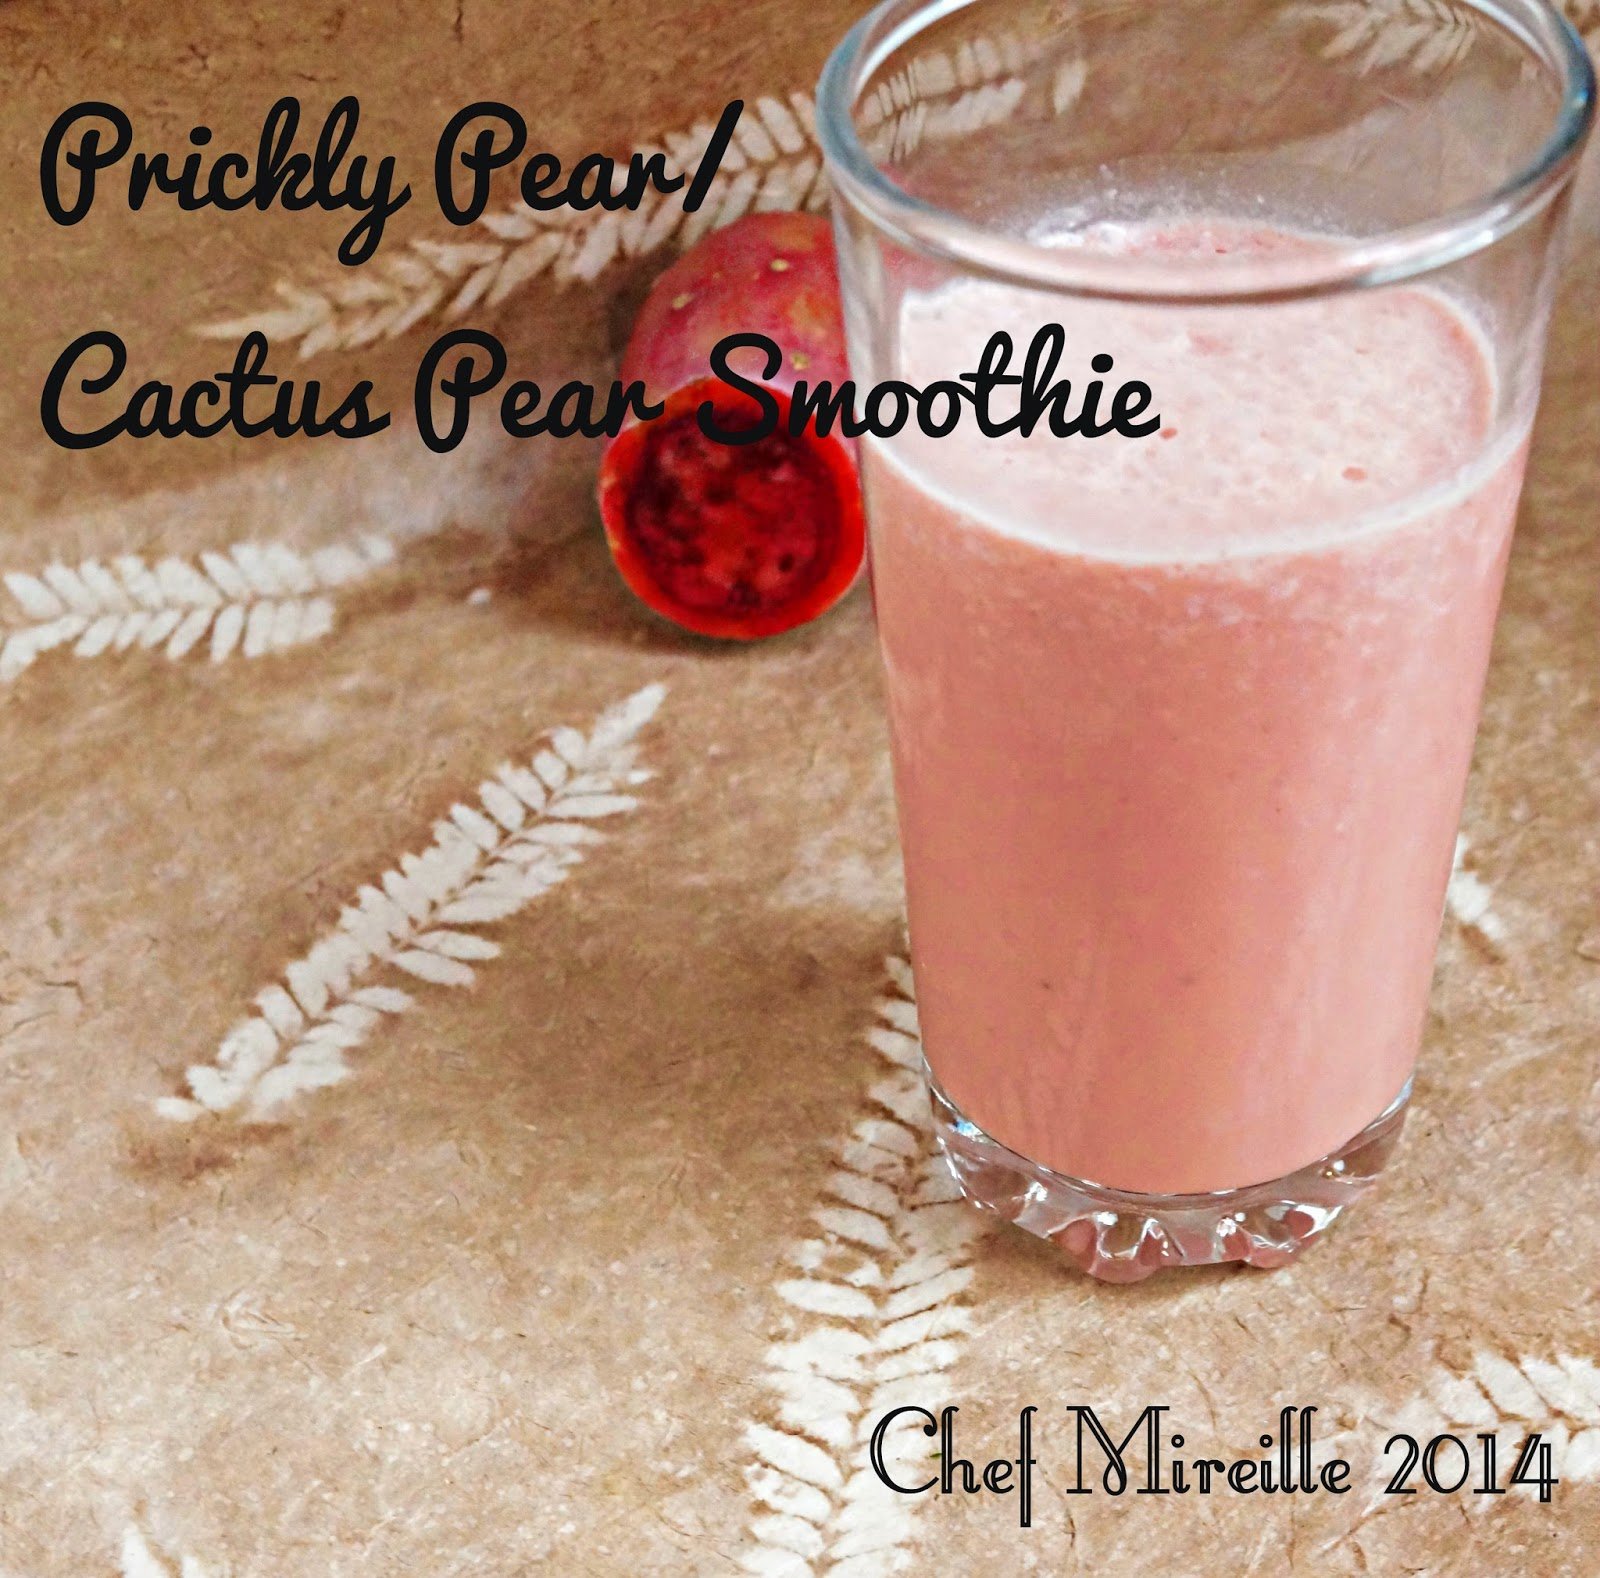 Prickly Pear Caribbean Smoothie